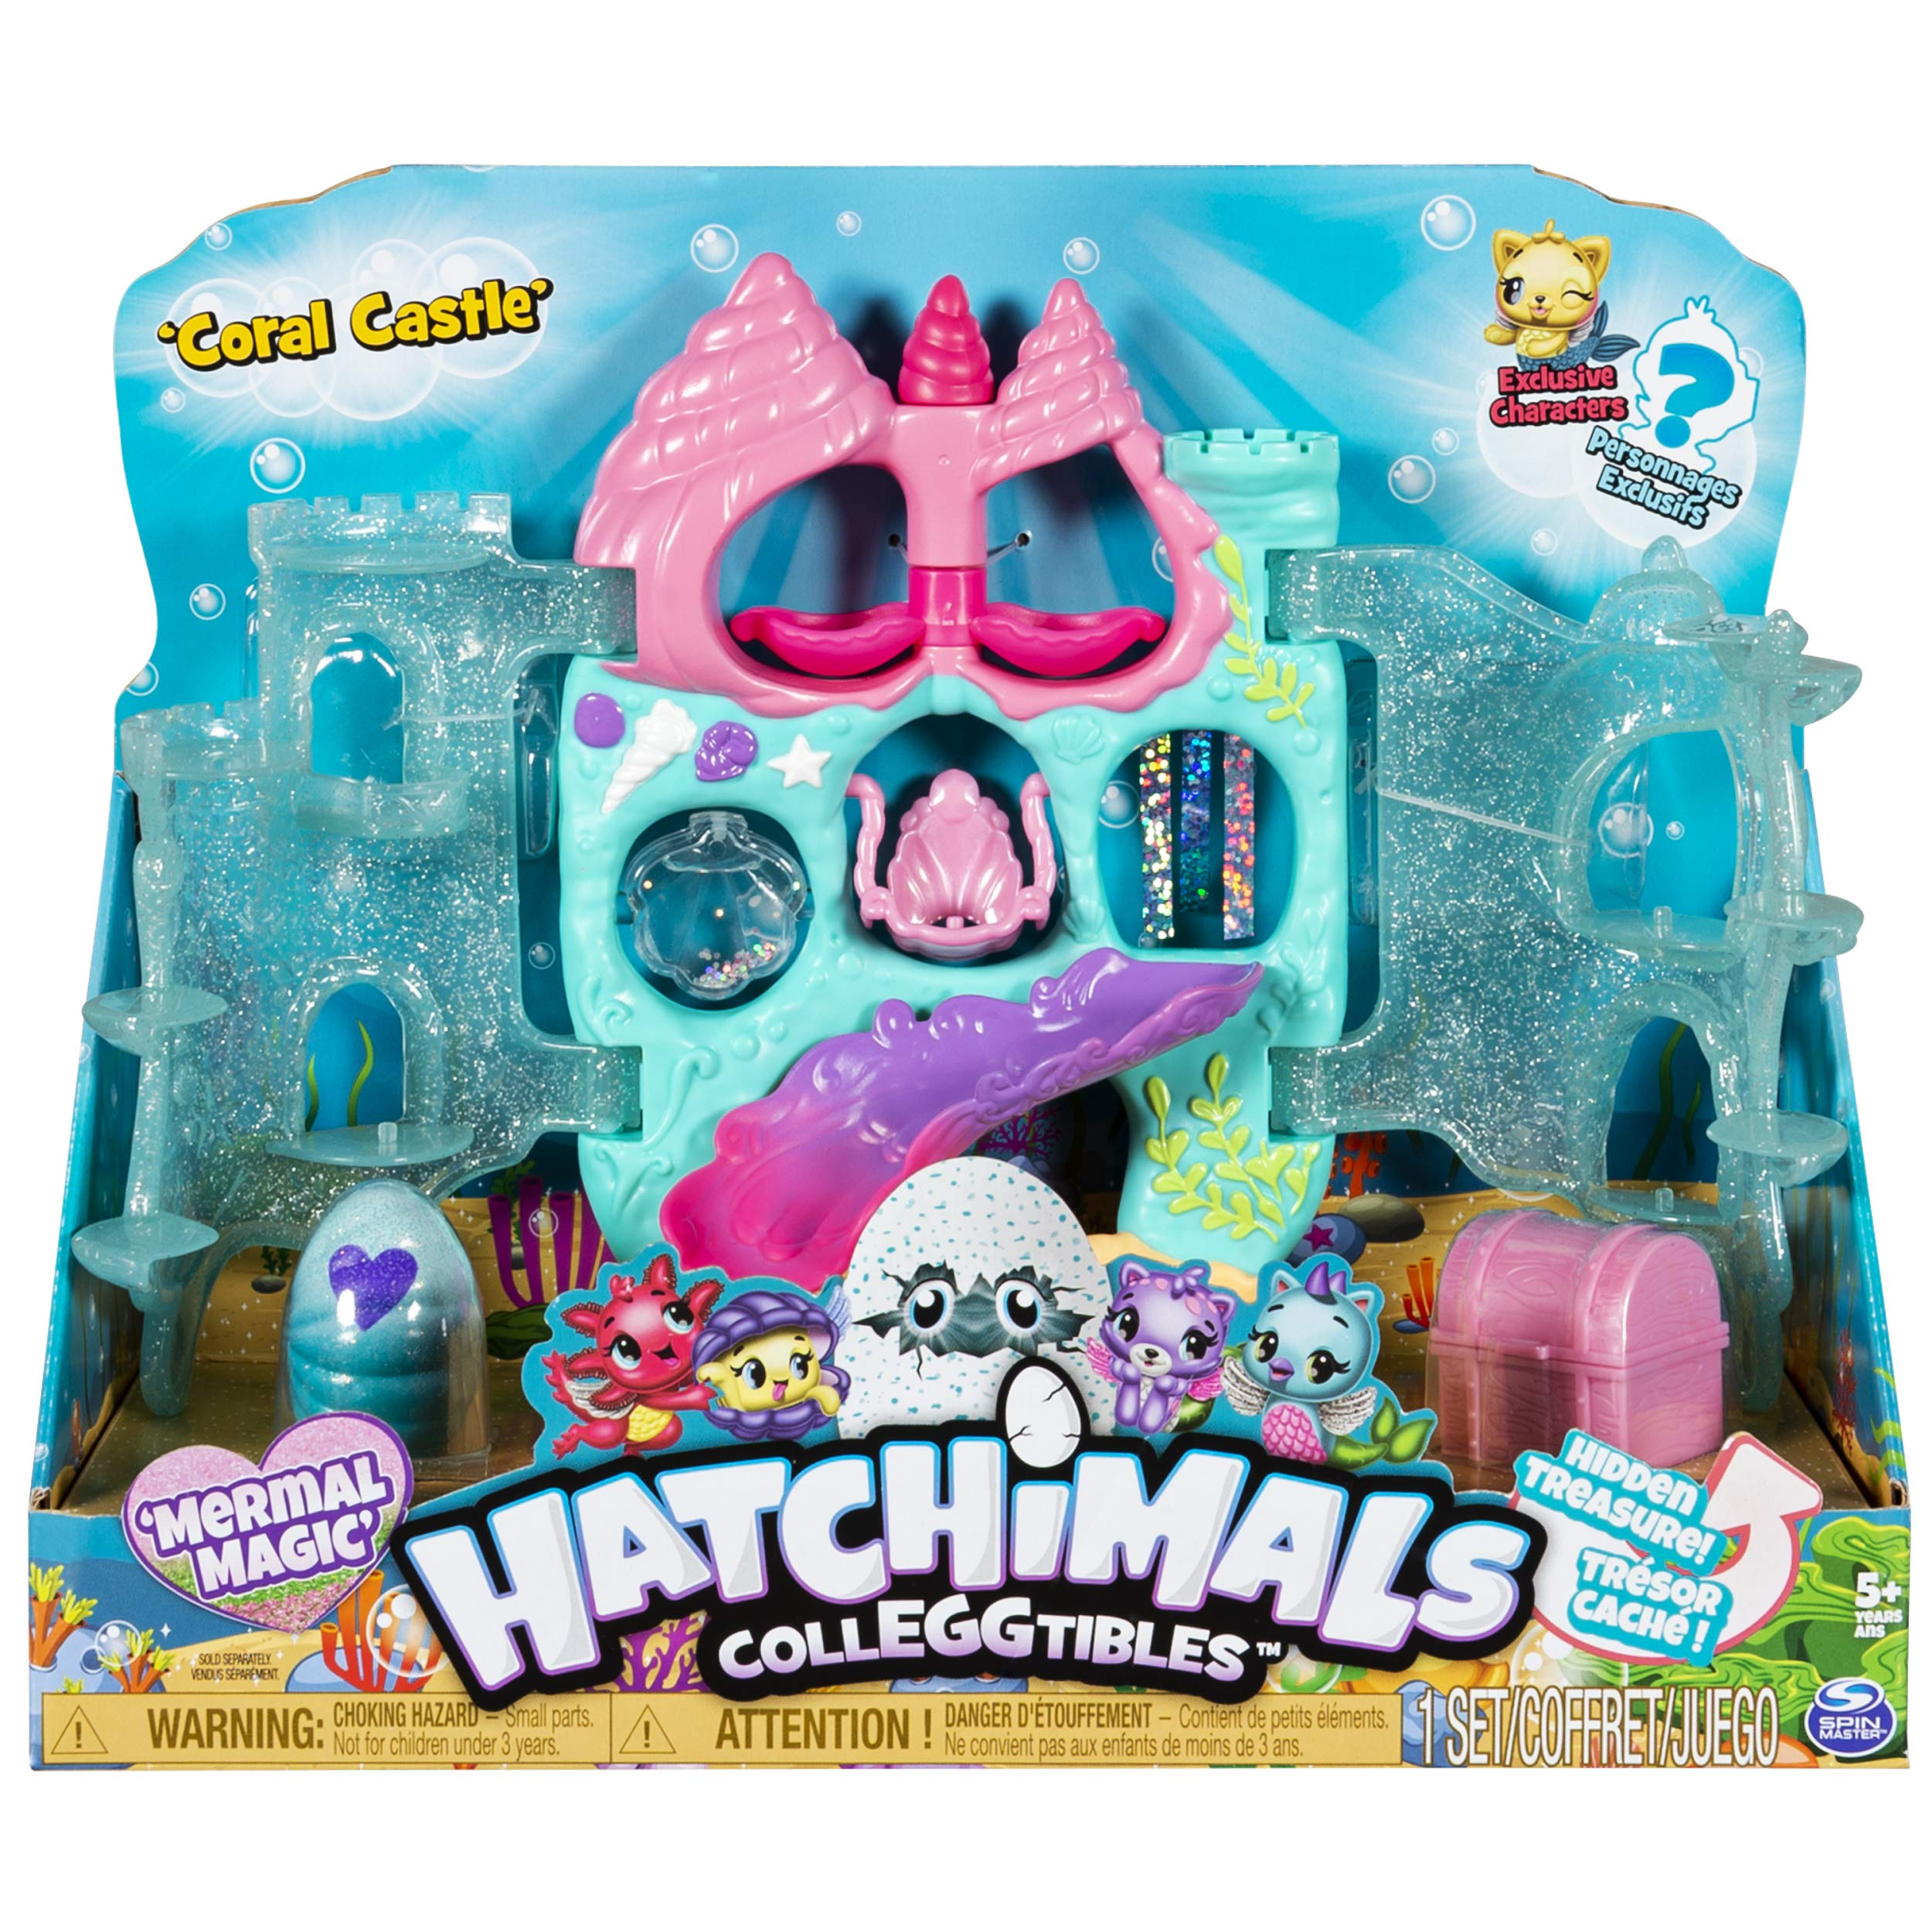 Hatchimals CollEGGtibles, Coral Castle Fold Open Playset with Exclusive Mermal Magic, for Kids Aged 5 and Up by Hatchimals